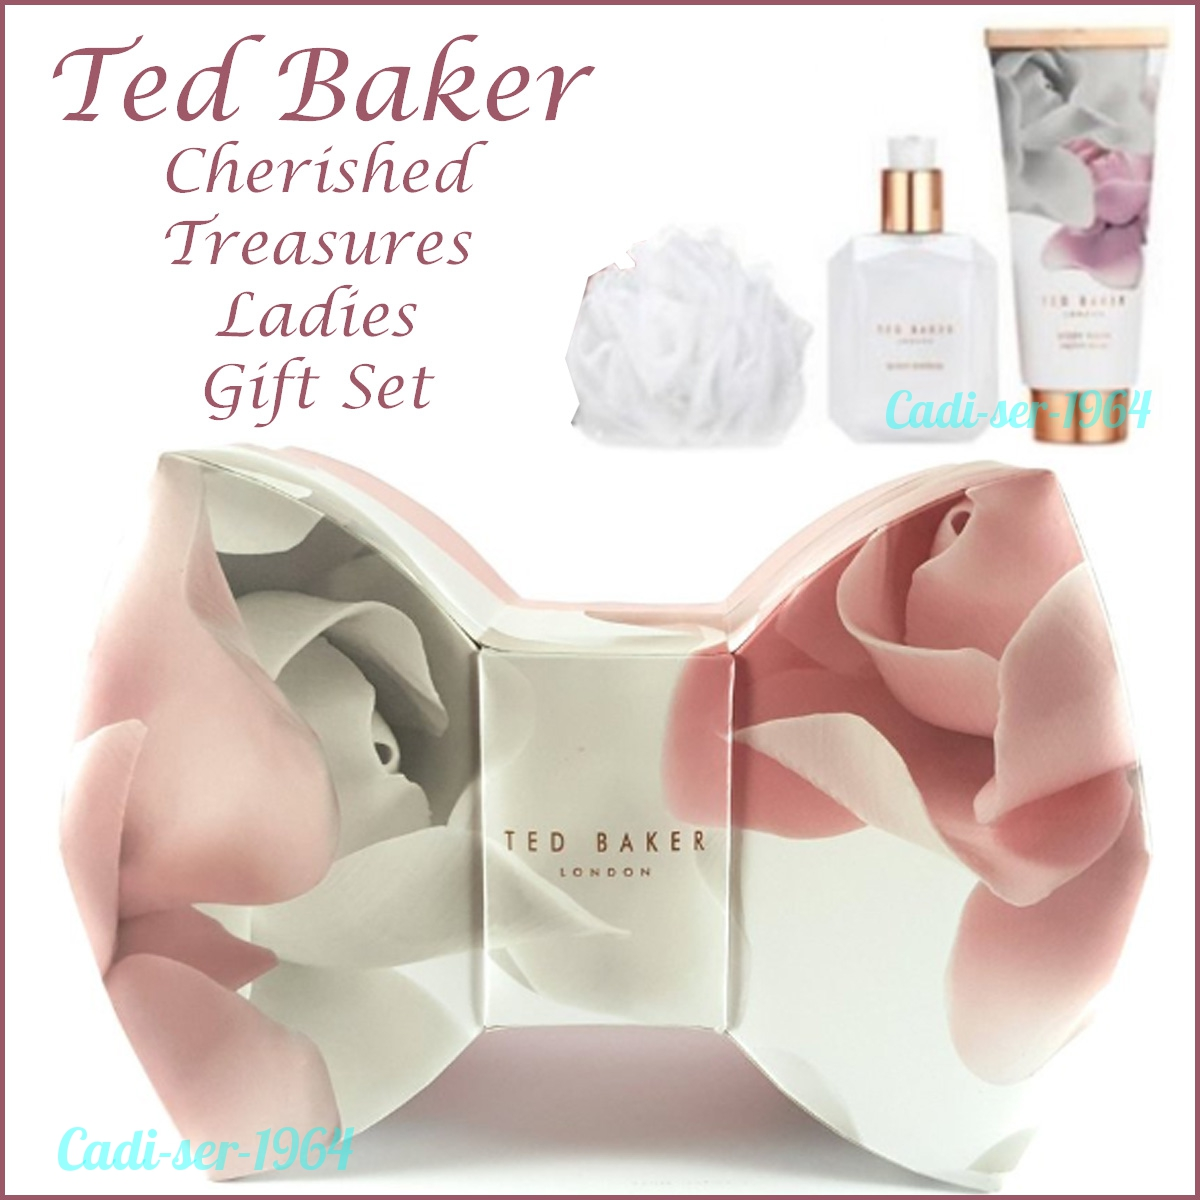 e20719414 Details about NEW Ted Baker Cherished Treasures Bow Ladies Gift Set  Porcelain Rose Collection